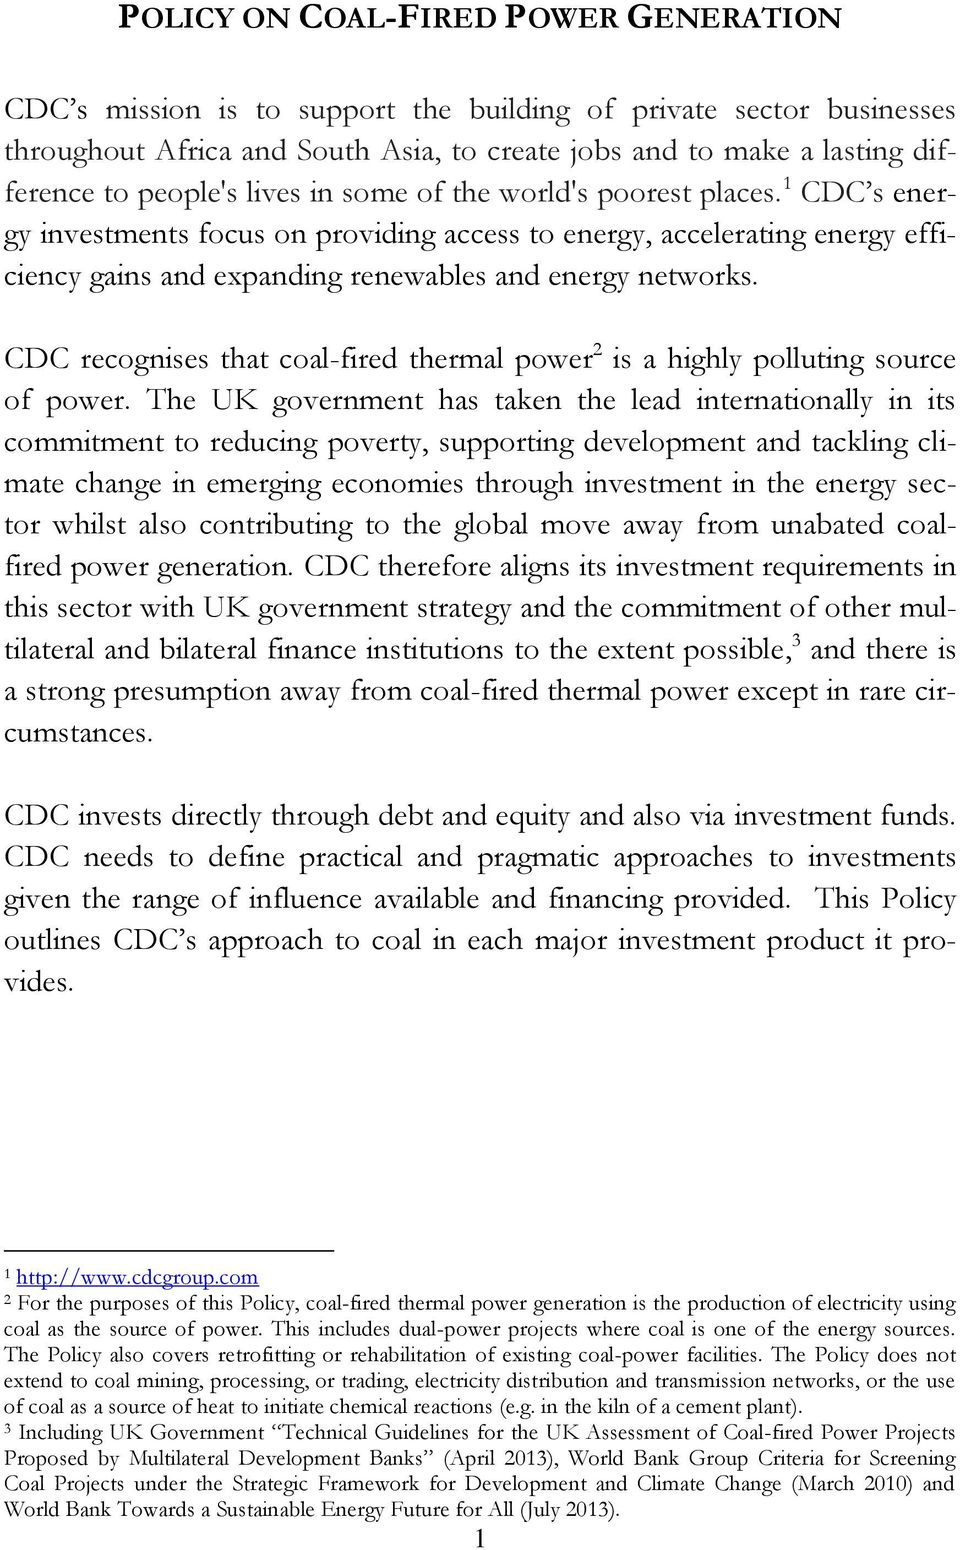 CDC recognises that coal-fired thermal power 2 is a highly polluting source of power.